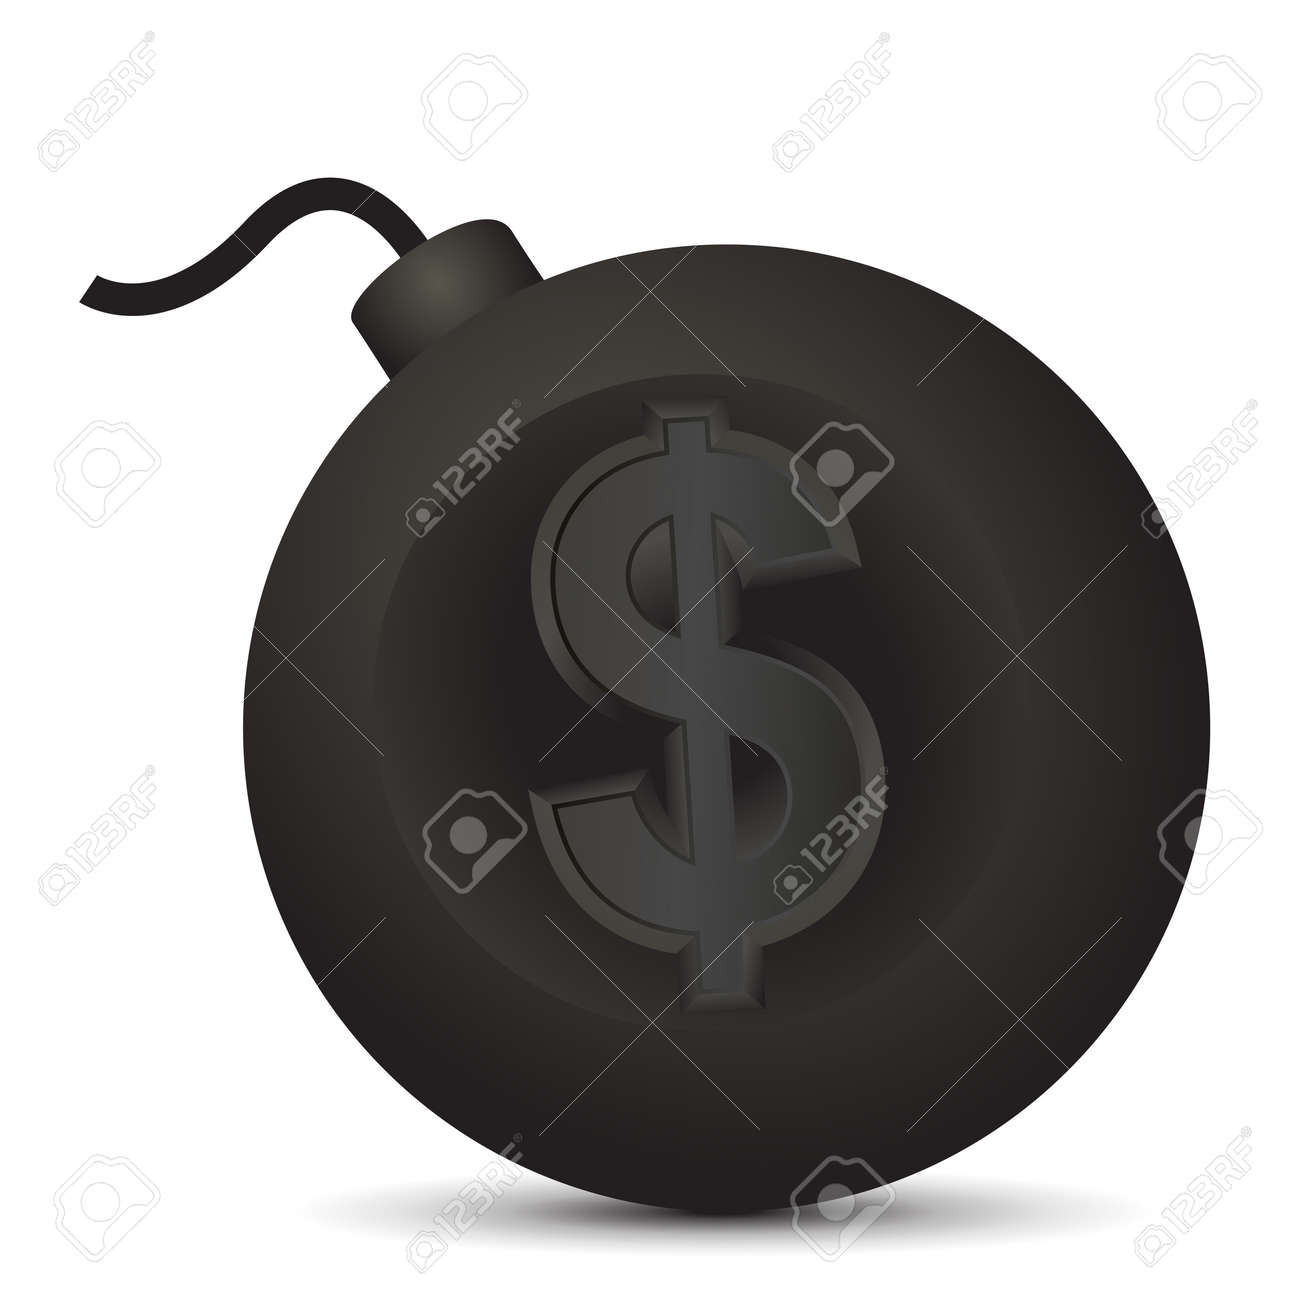 Vector illustration of large round bomb with dollar symbol. Stock Vector - 18854173